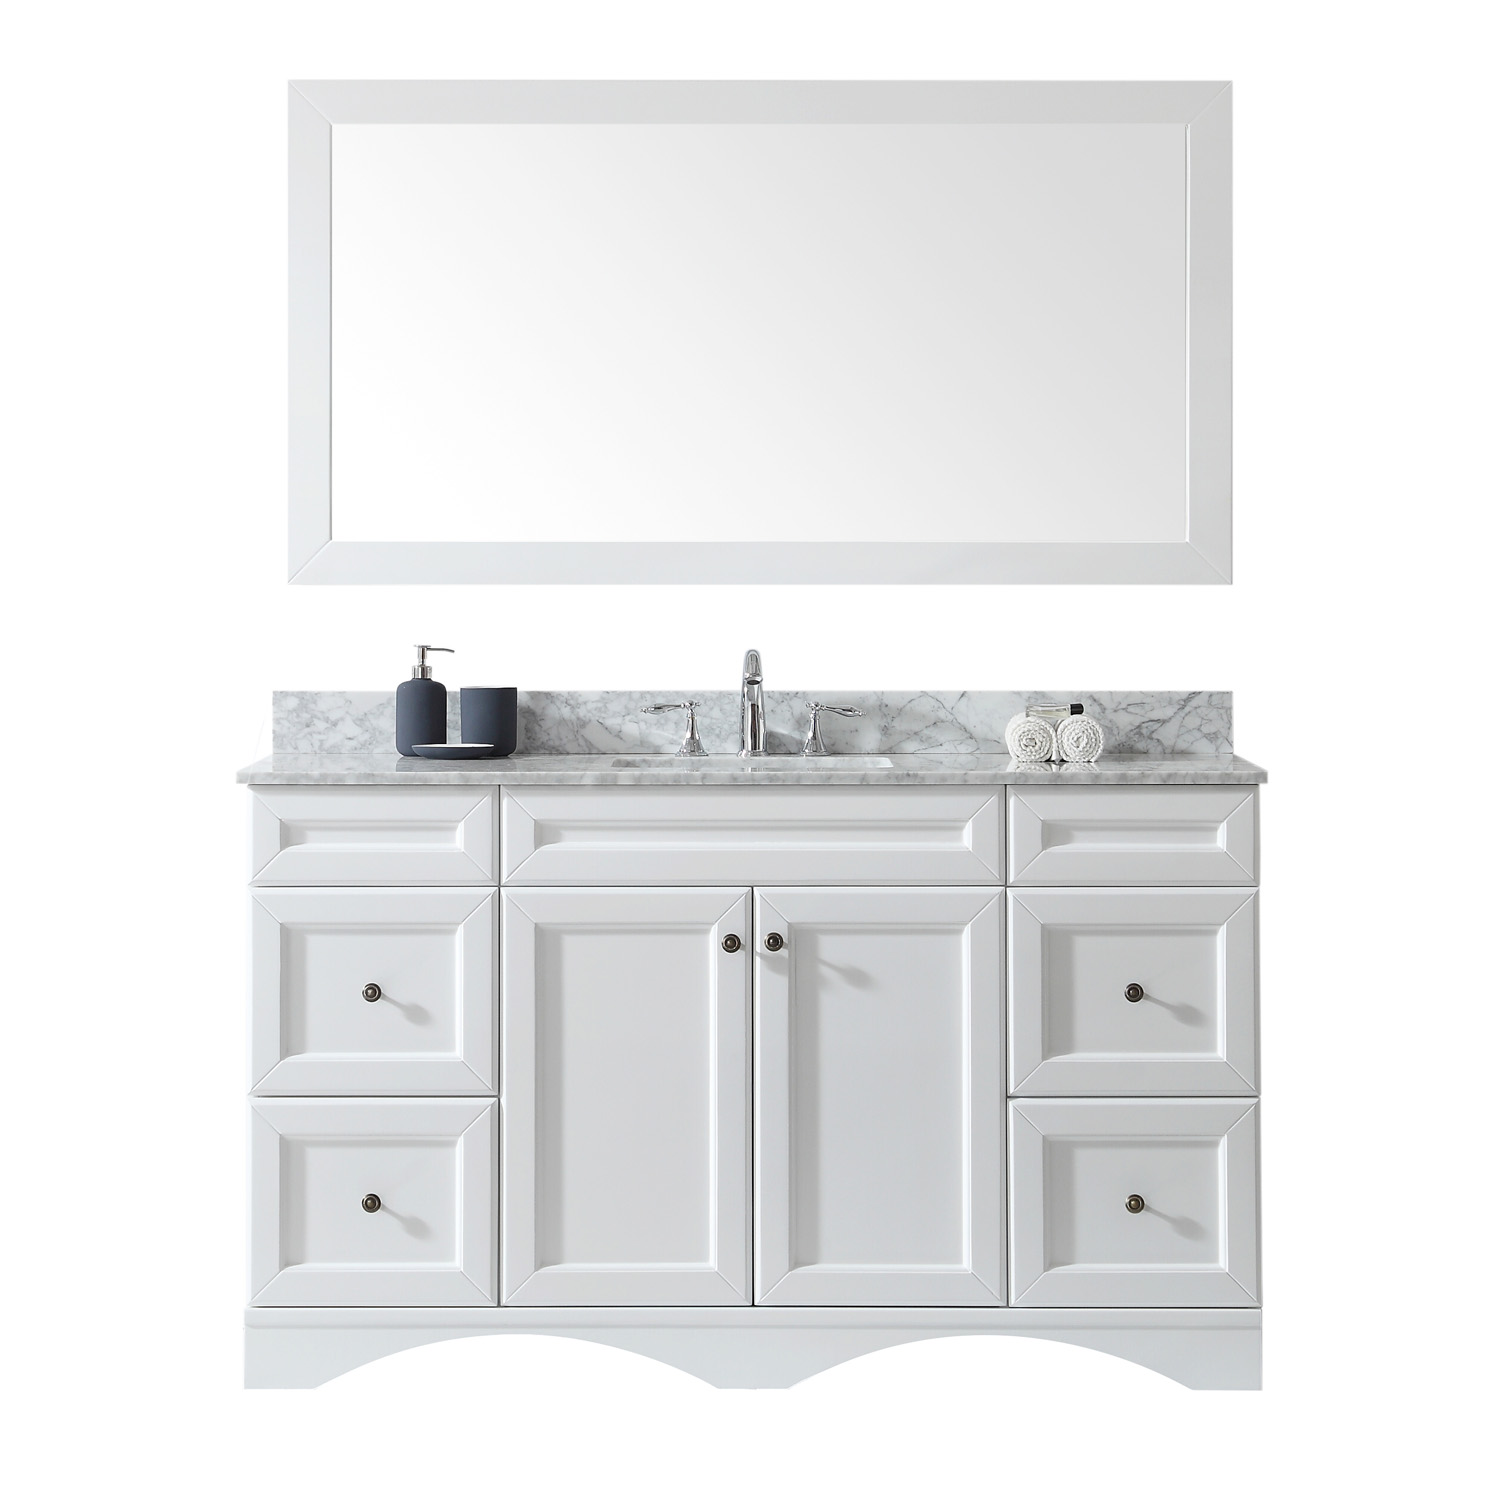 "60"" Single Bath Vanity in White with Marble Top and Square Sink with Faucet and Mirror Options"